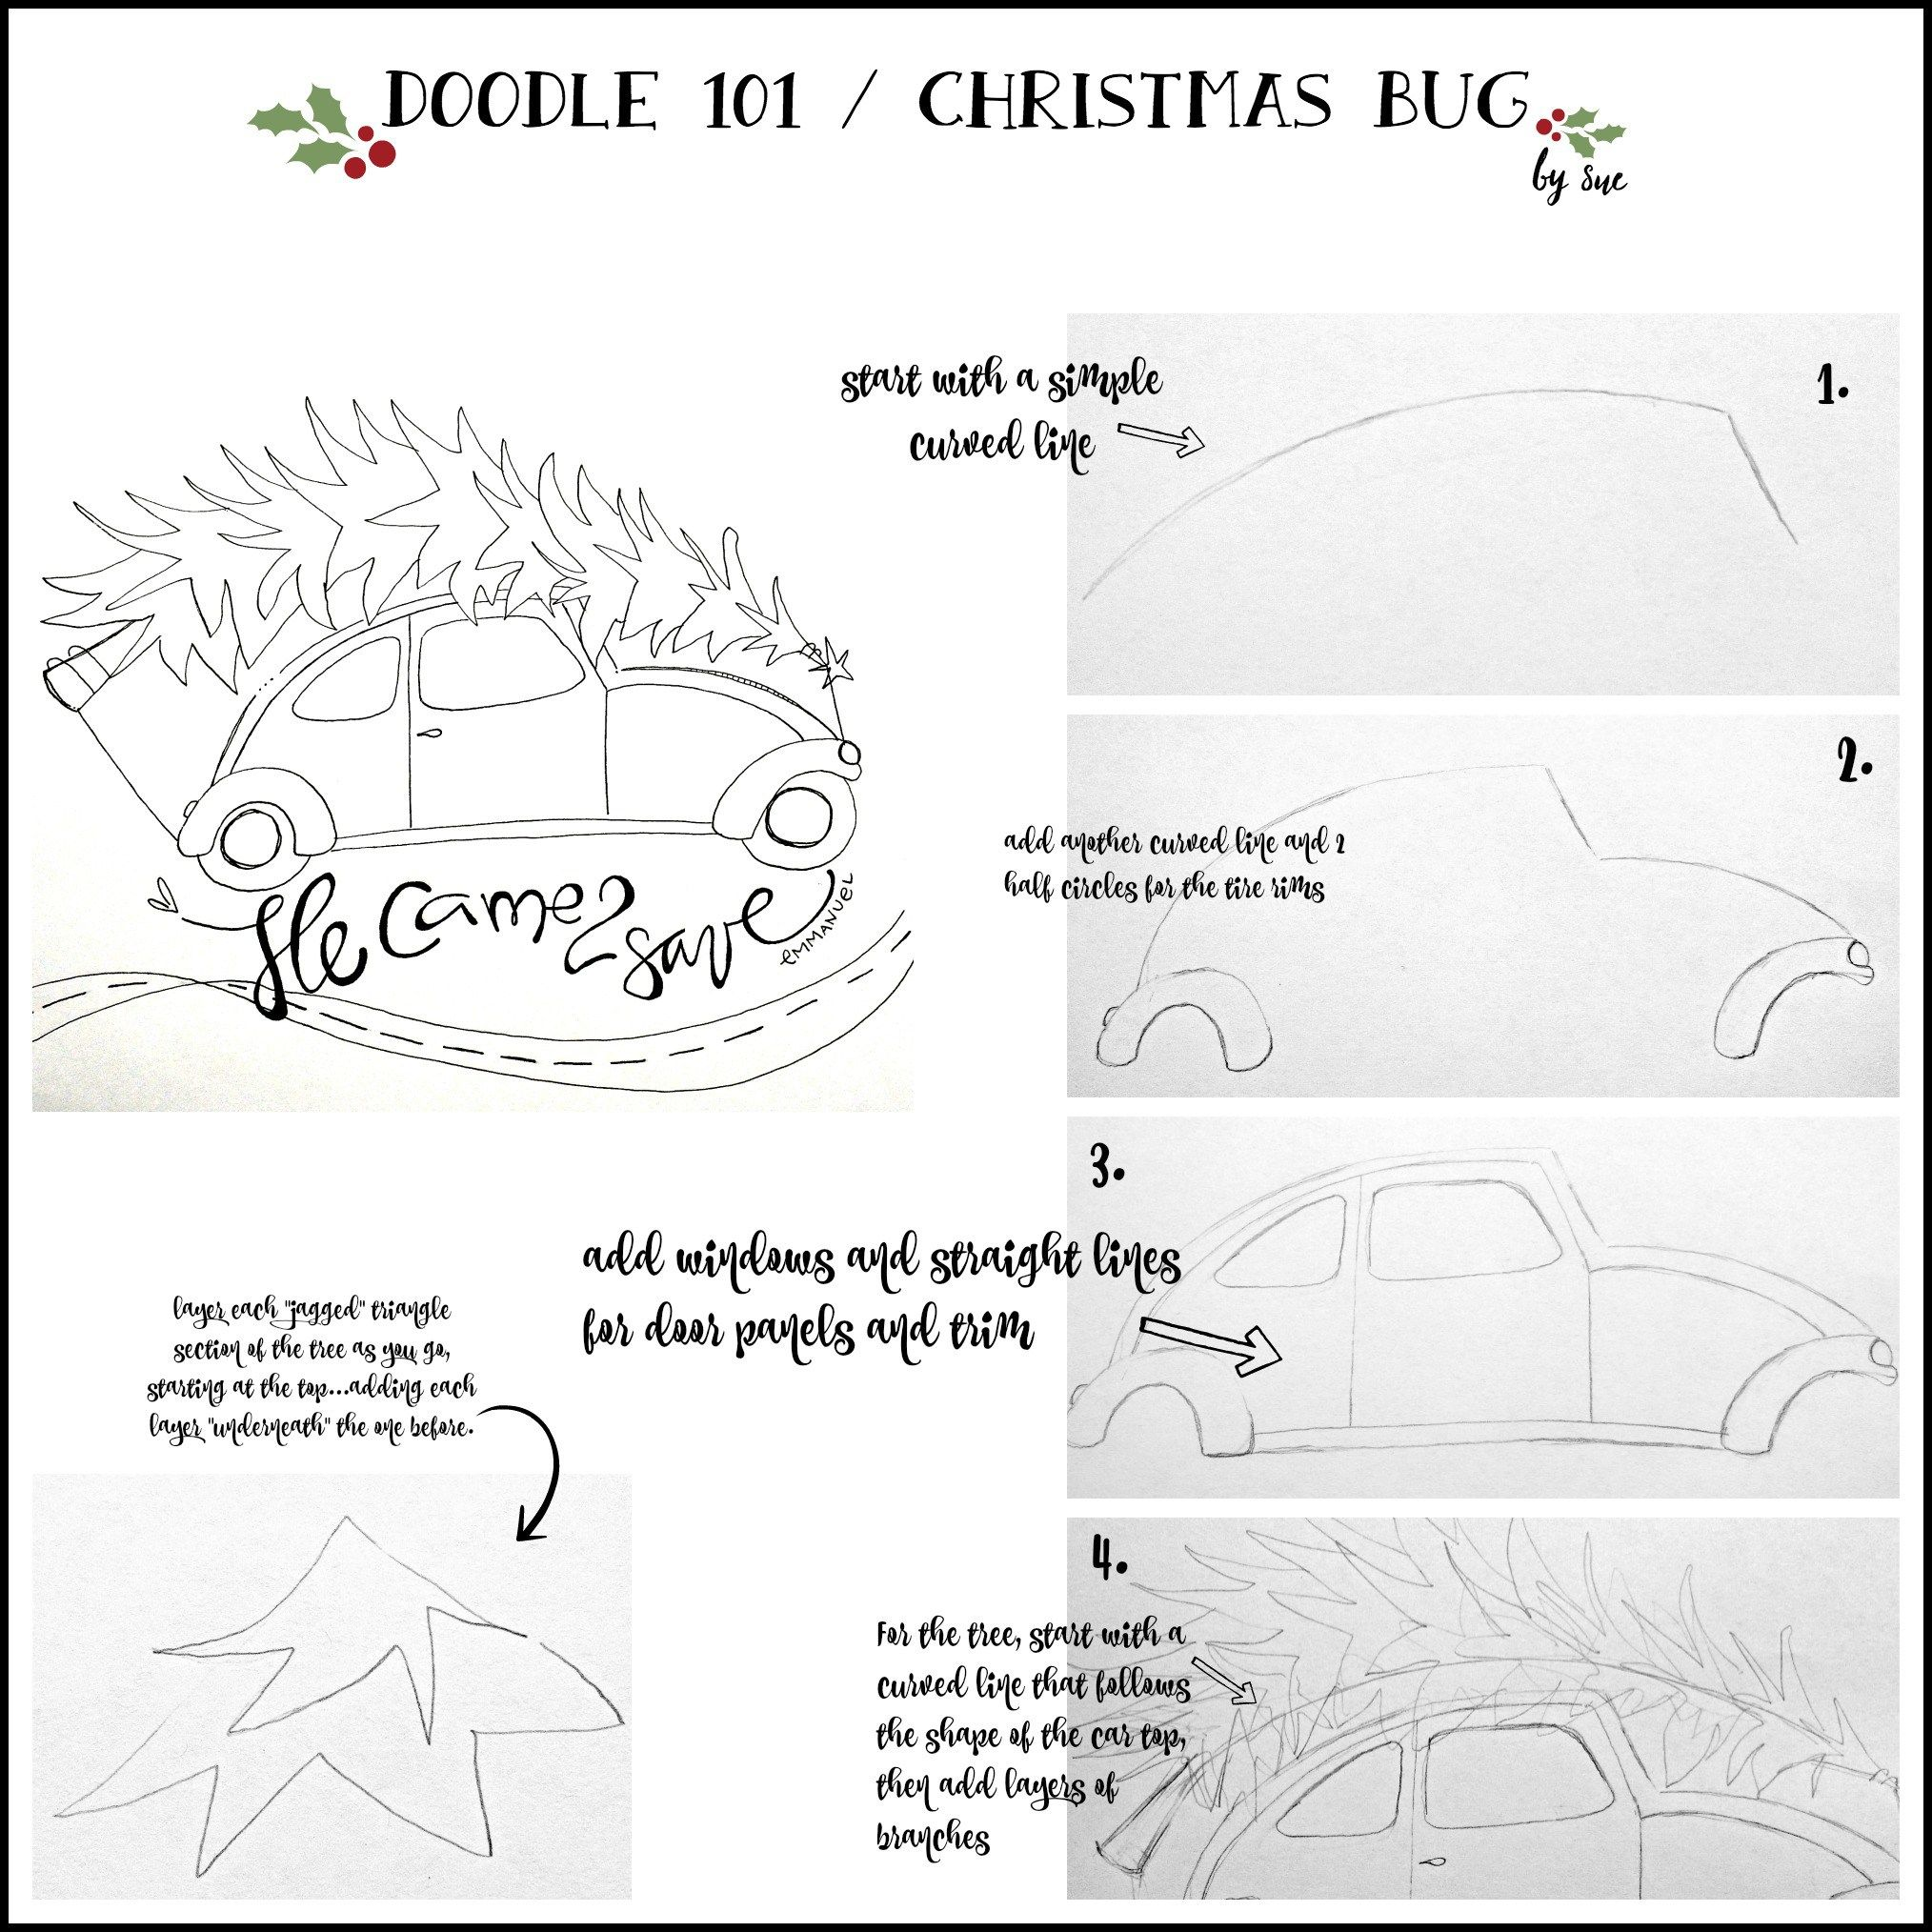 Doodle 101 Click On Images For Pdf With Images Bible Doodling Bible Art Journaling Doodles